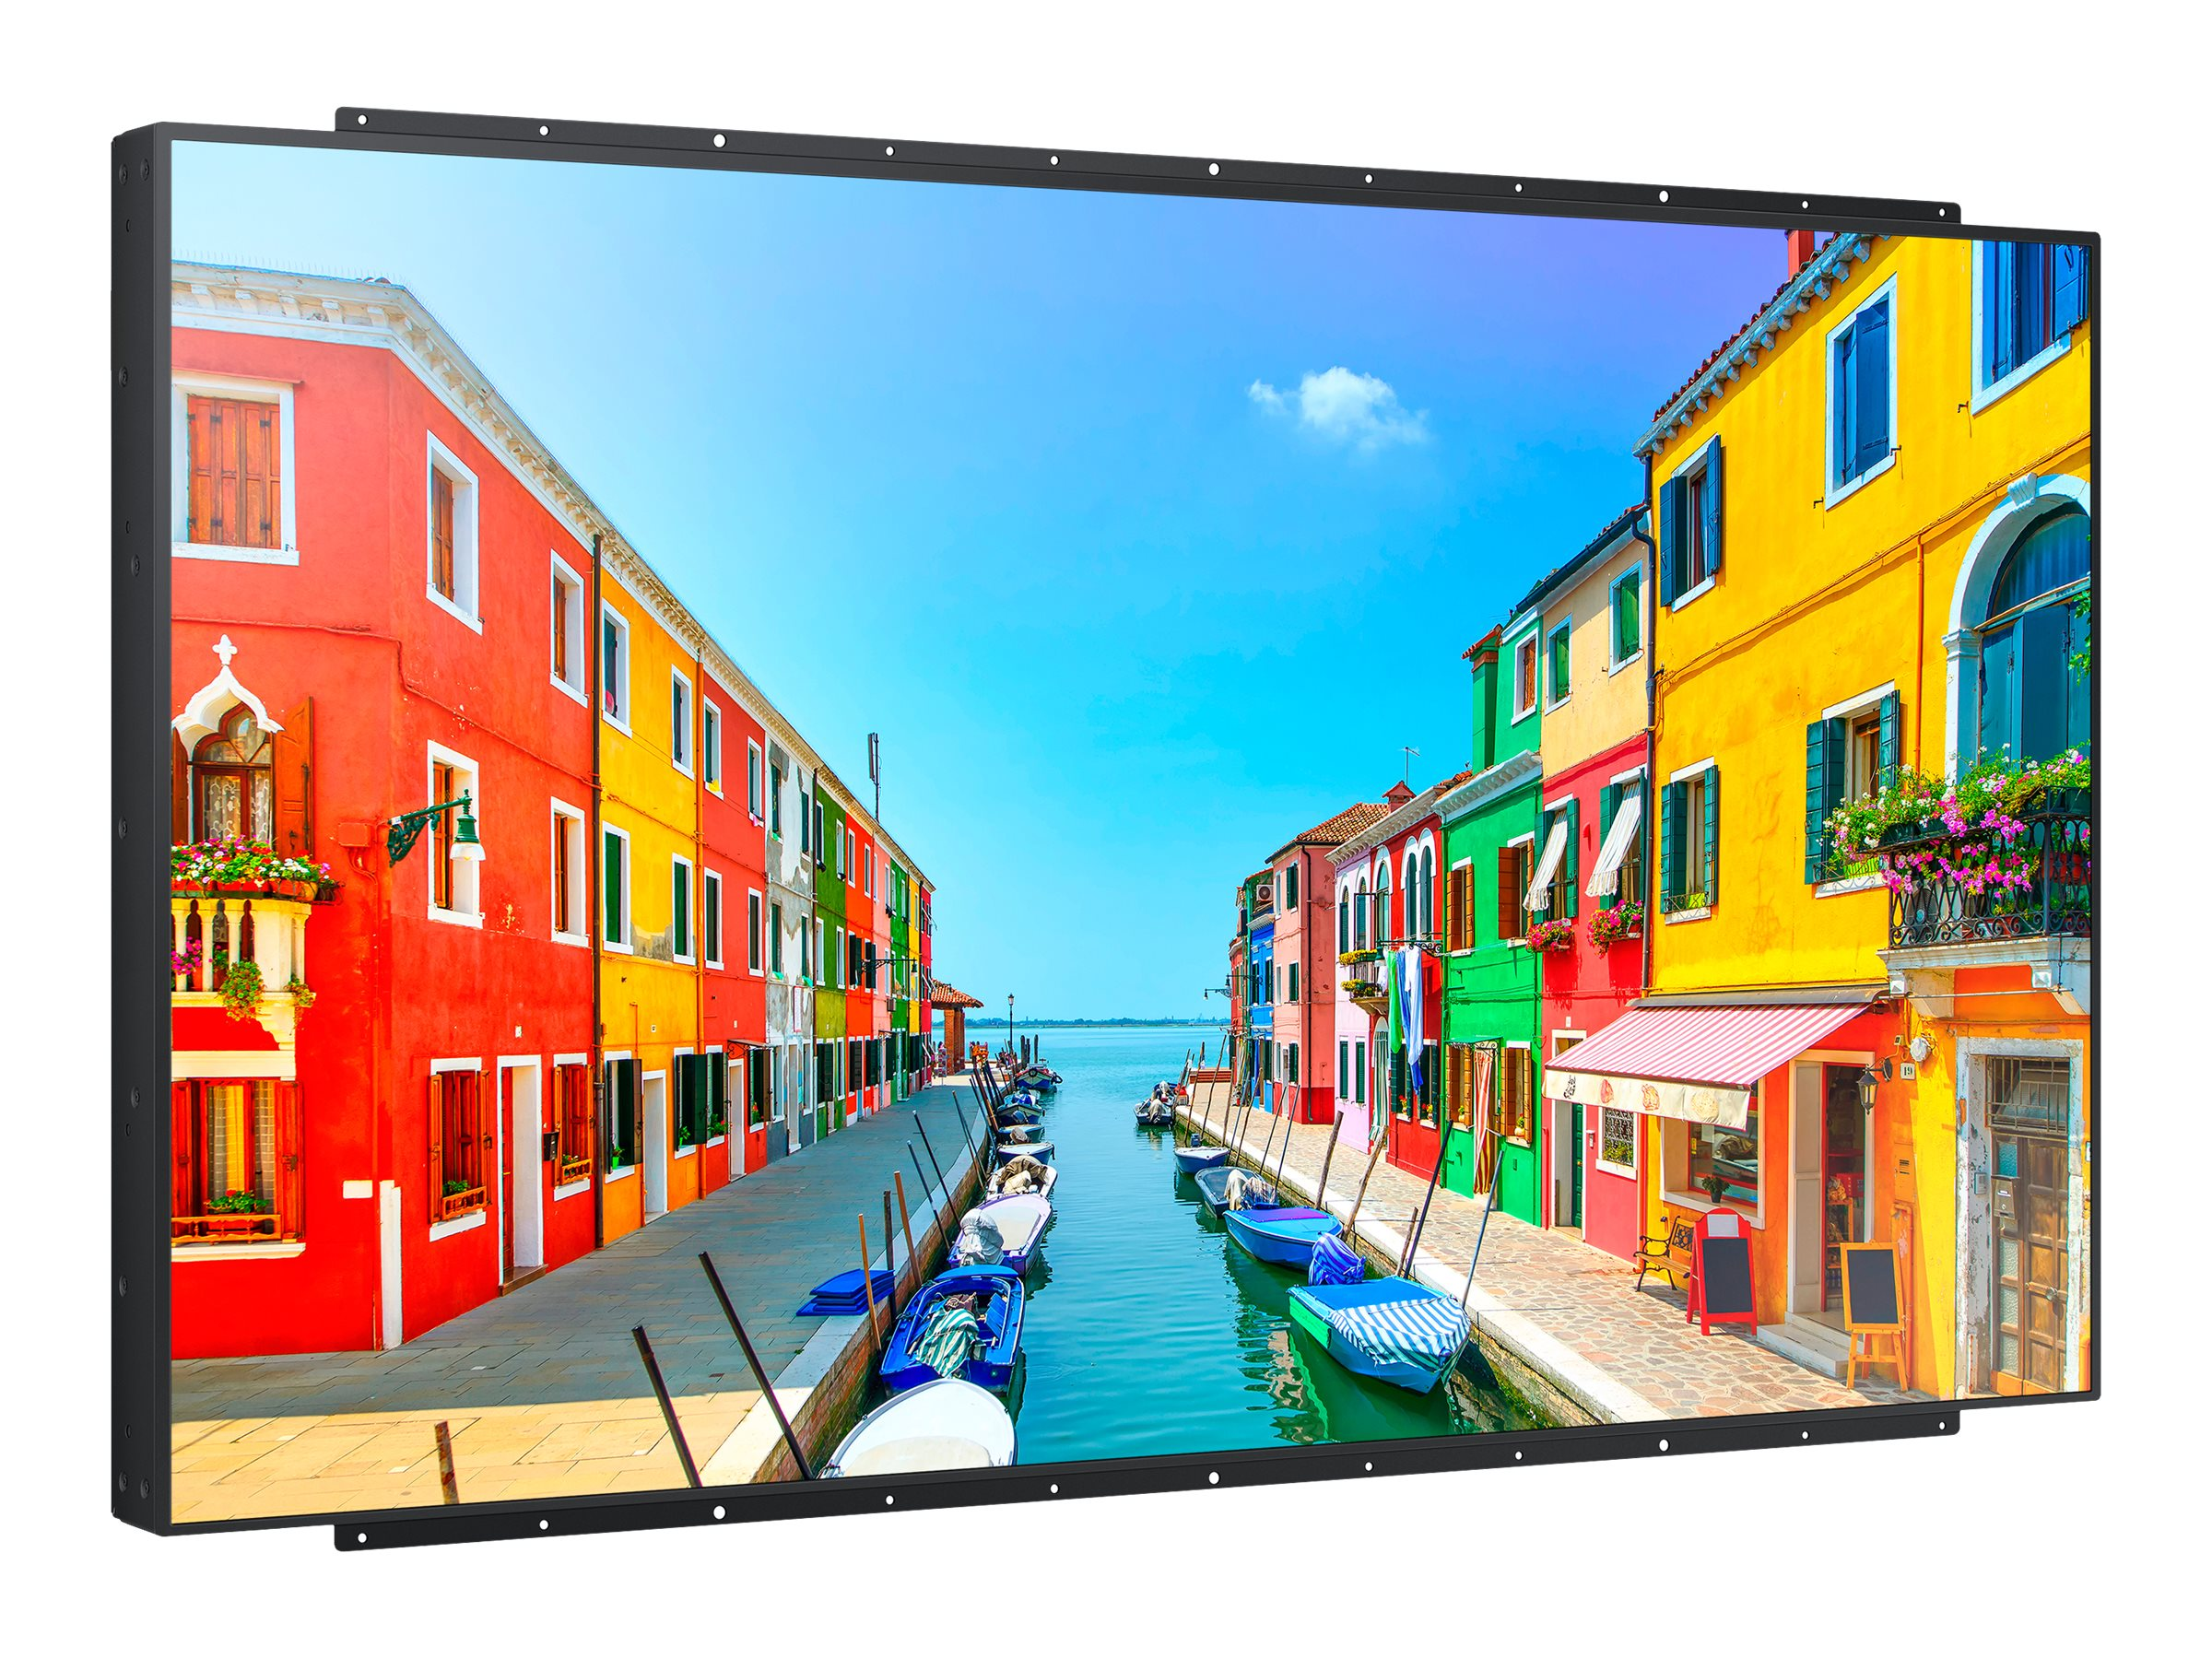 Samsung 55 OMD-K Series Full HD LED-LCD Outdoor Display, Black, OM55D-K